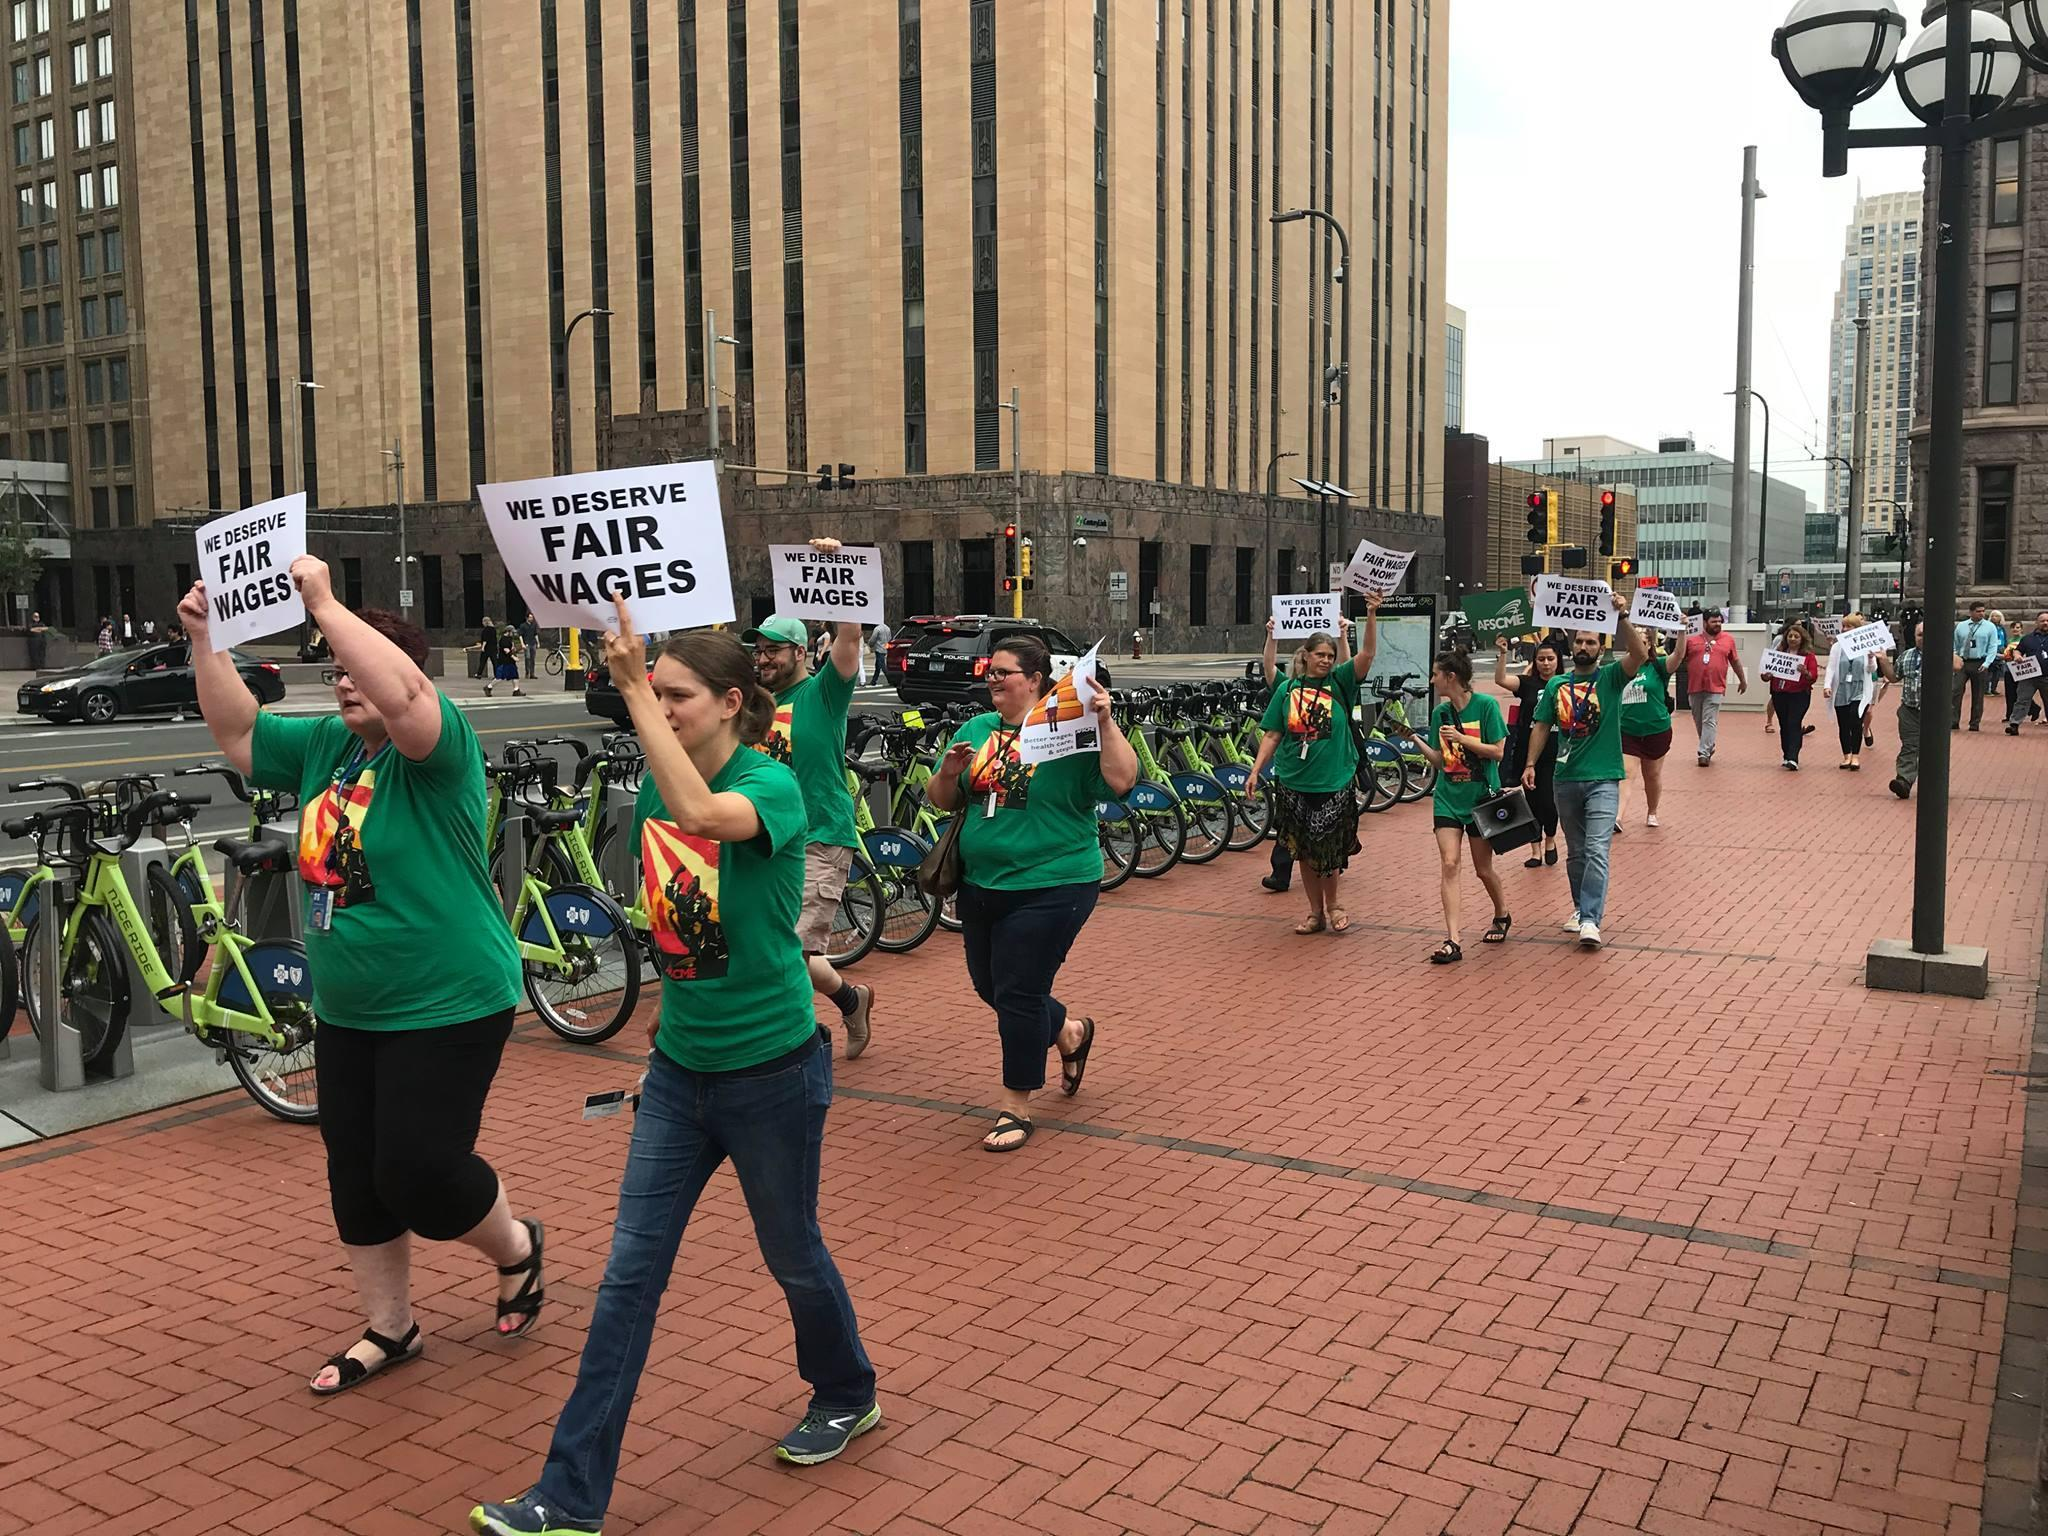 AFSCME marching down Hennepin County Government Center